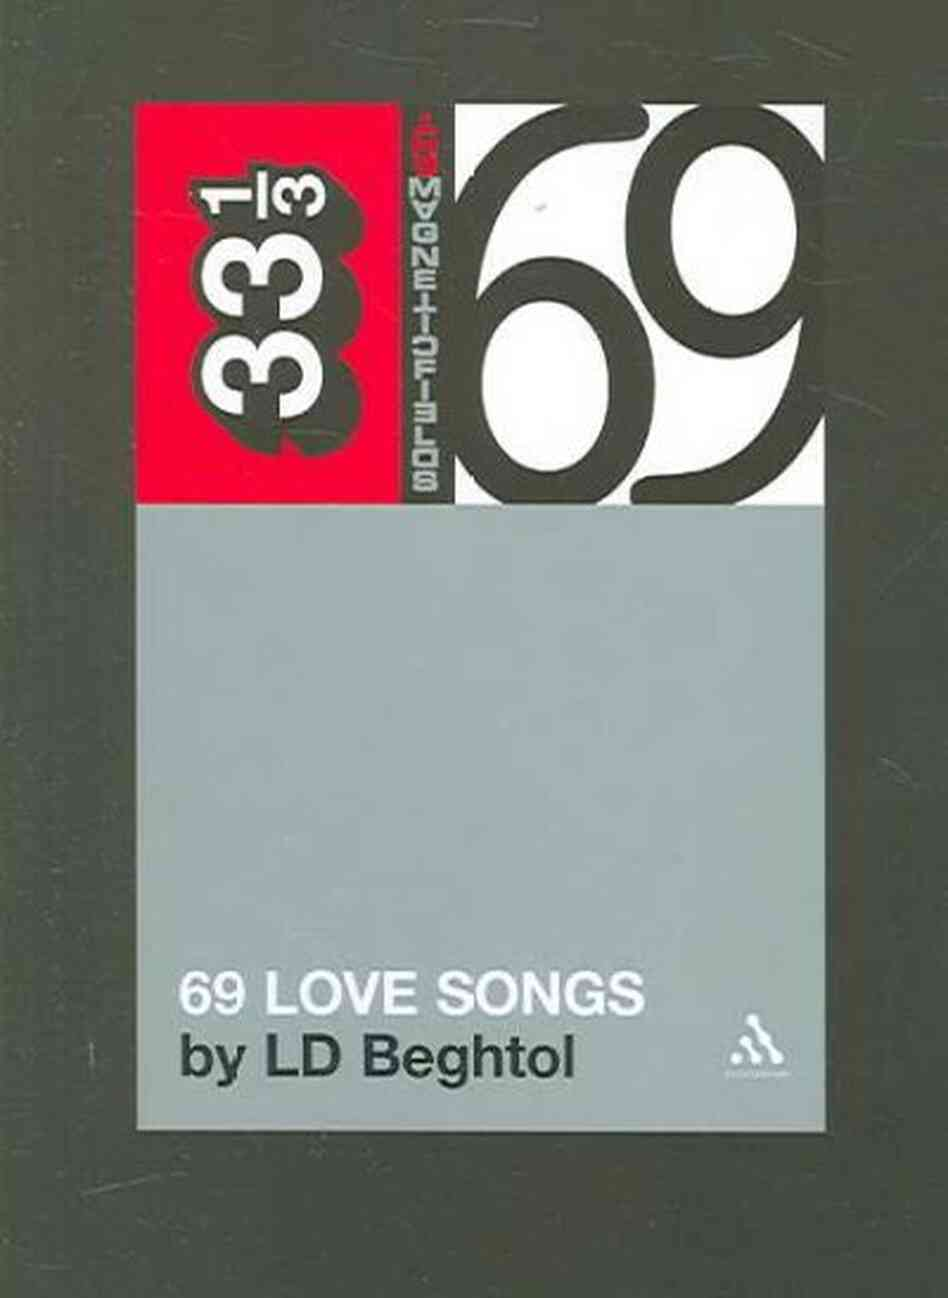 69 Love Songs